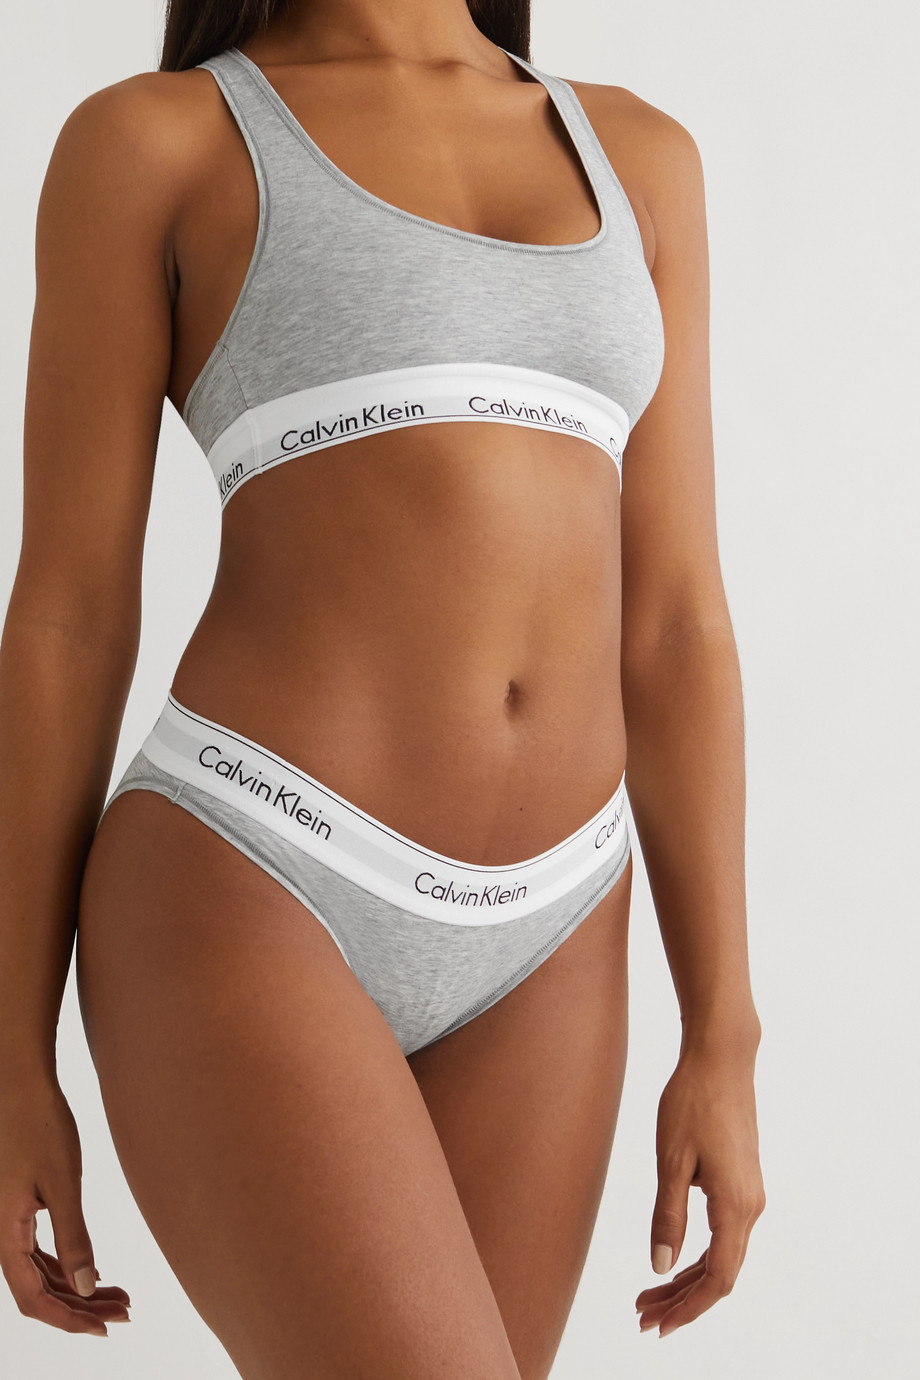 CALVIN KLEIN UNDERWEAR Modern Cotton stretch cotton-blend briefs